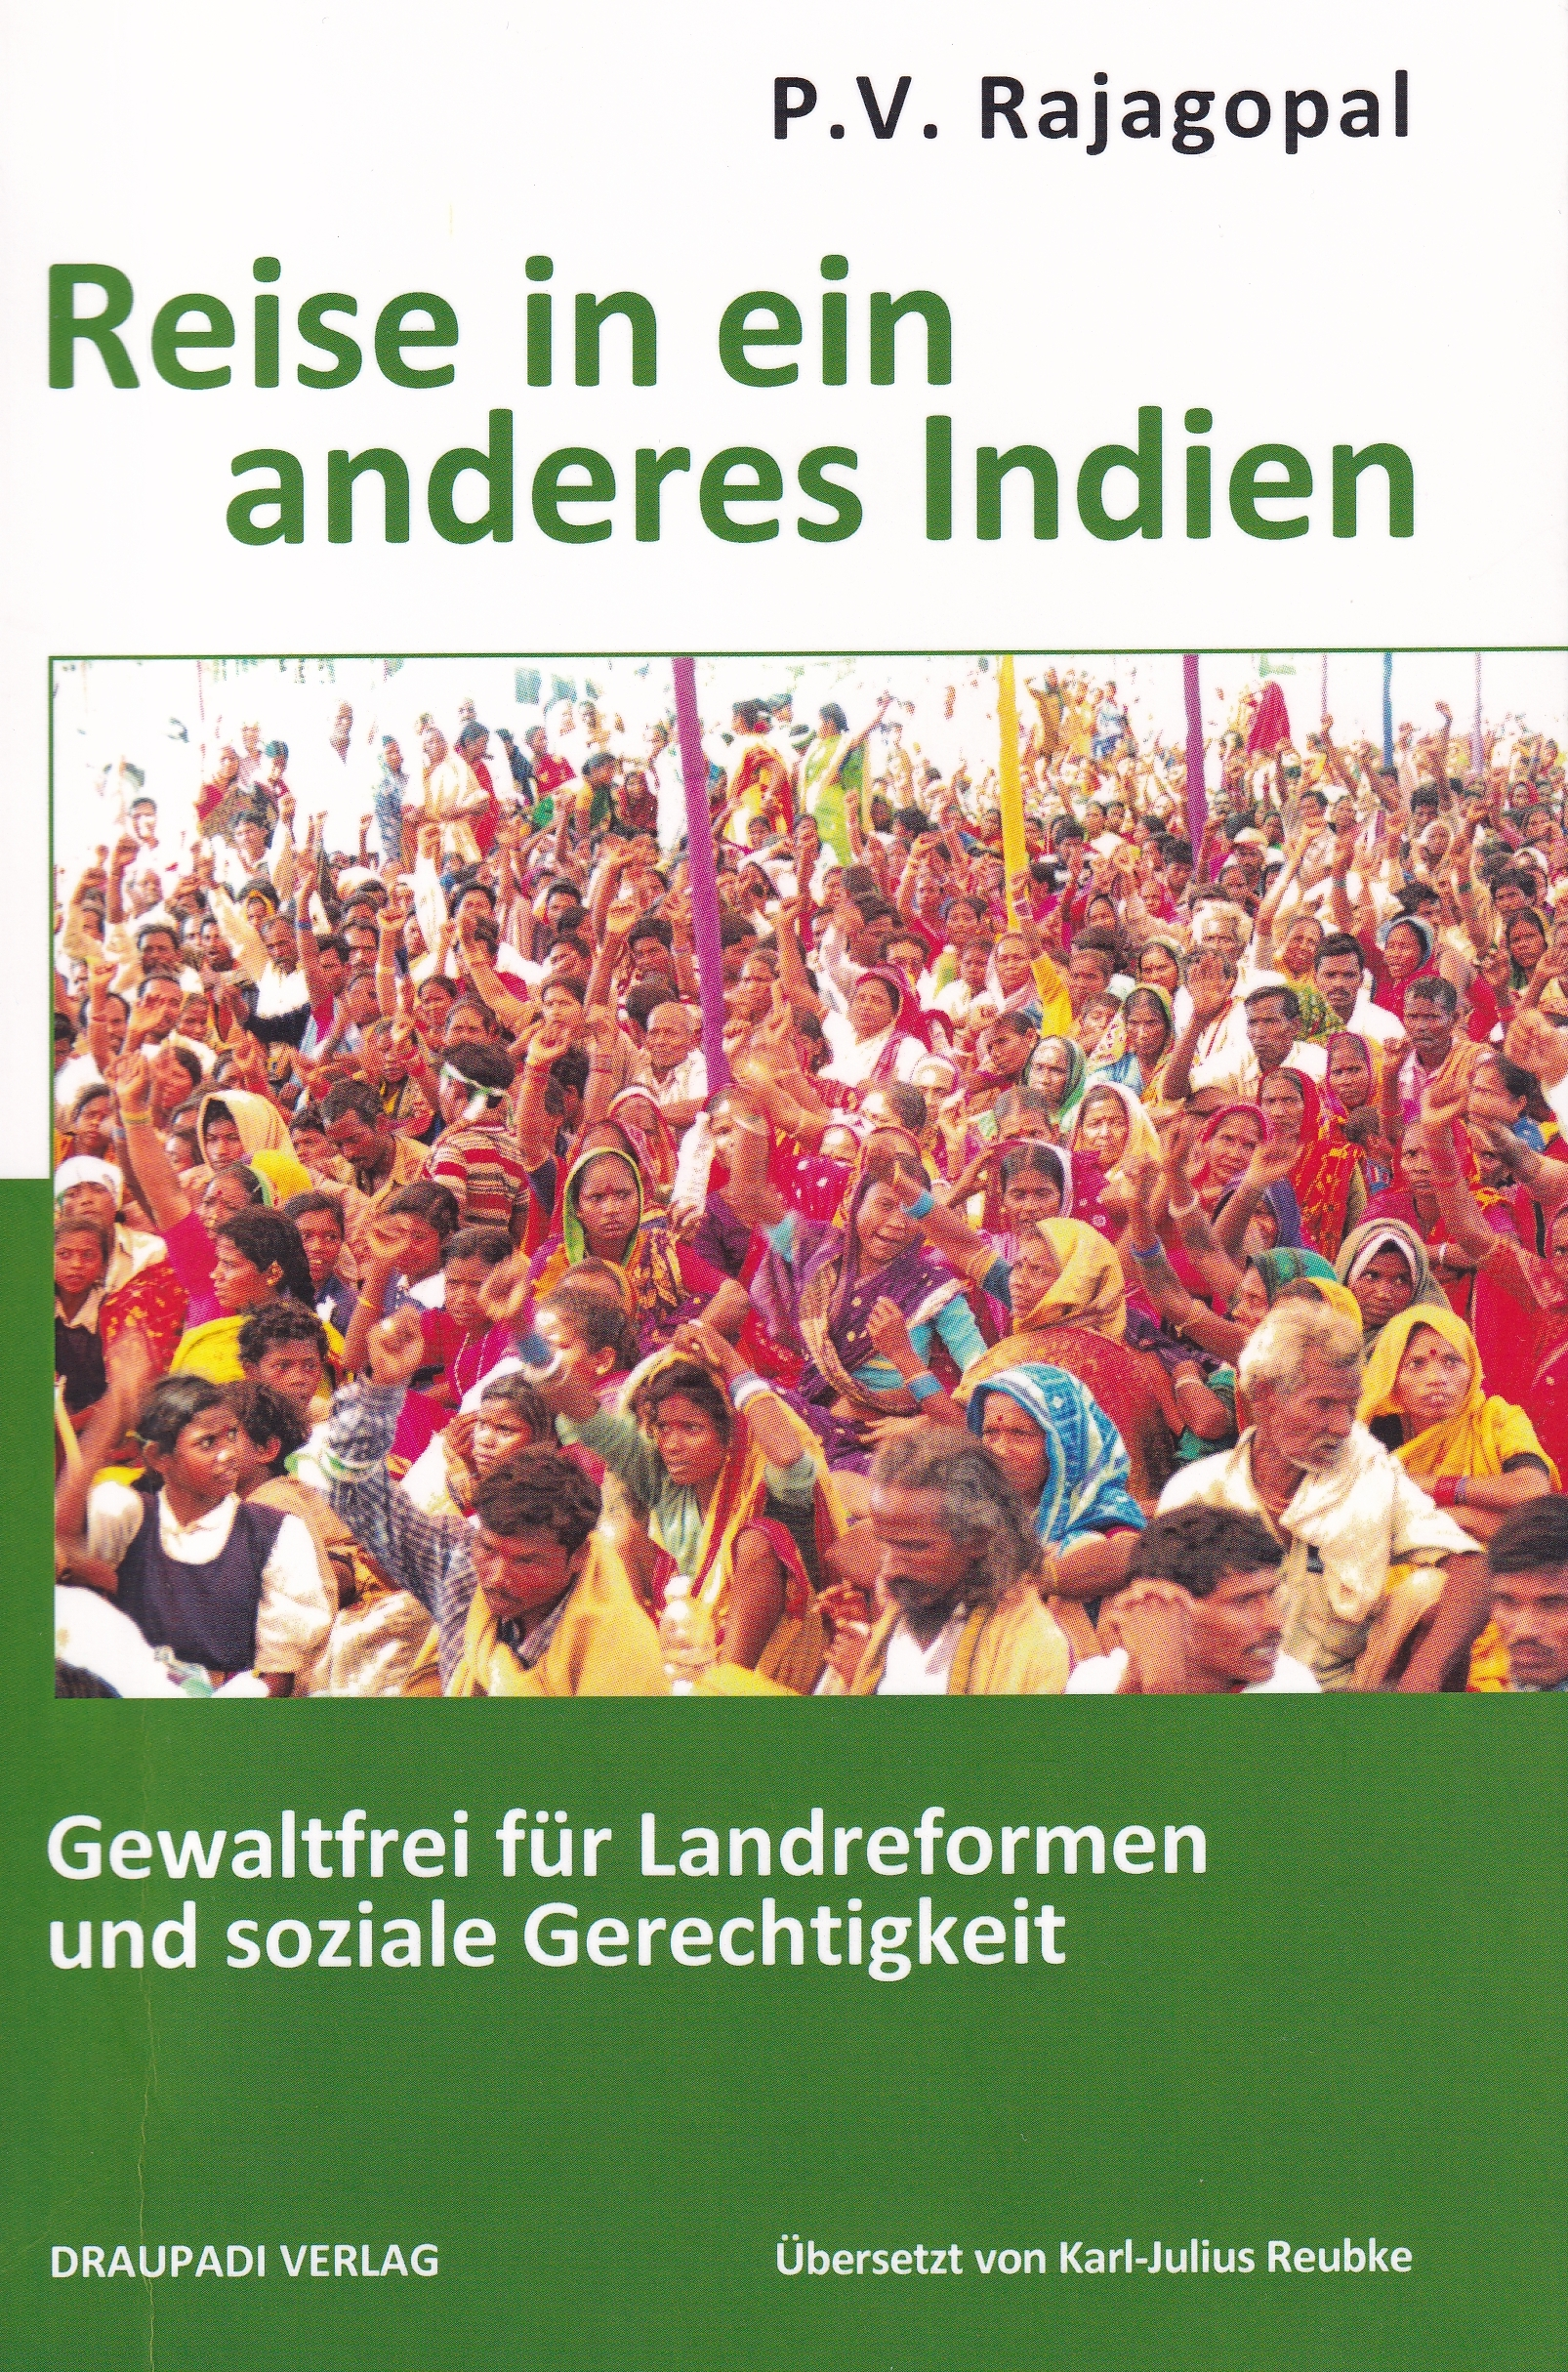 """Reise in ein anderes Indien"" P. V. Rajagopal"